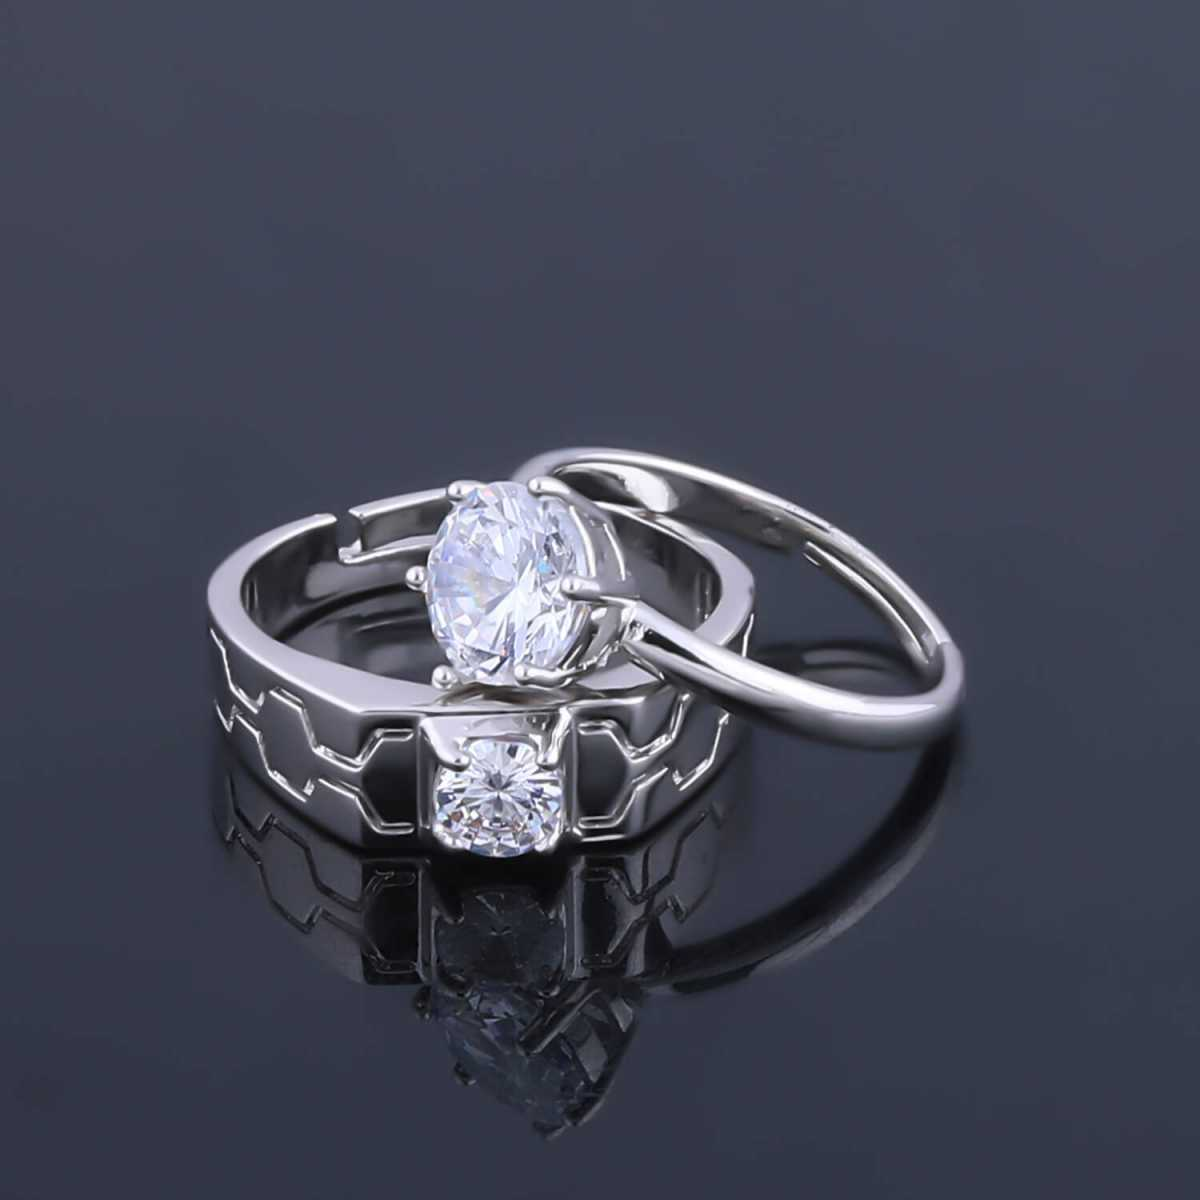 SILVERSHINE,silver plated round shine one diamond and carvingwith sharp look designer adjustable couple ring for men and women.